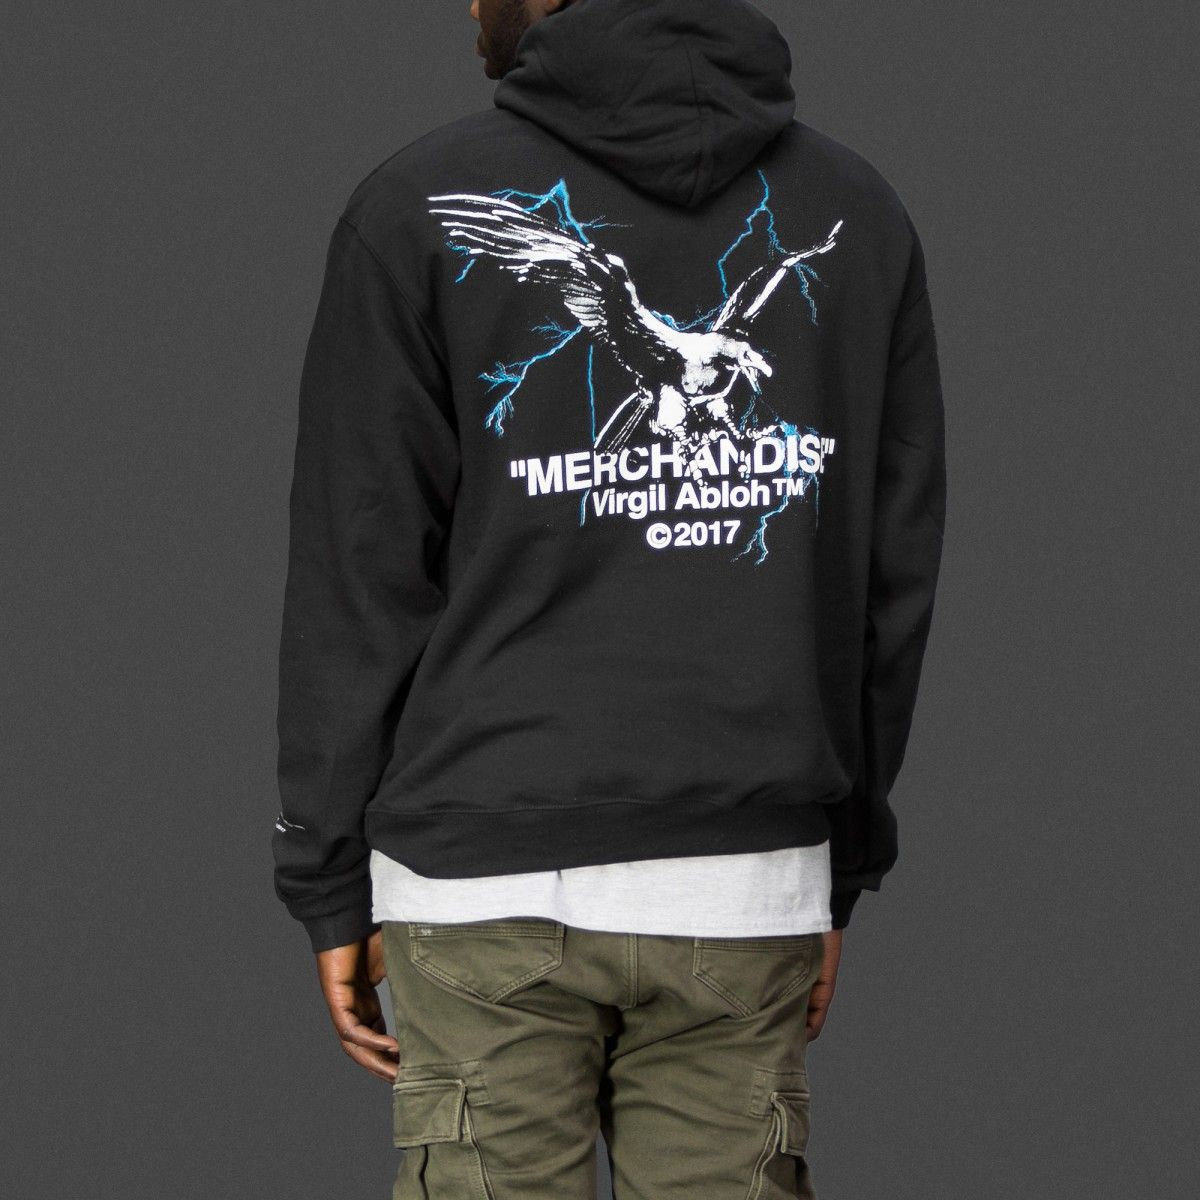 b0708696 Off-White x Travis Scott | Music in Fashion & Lifestyle Collabs ...